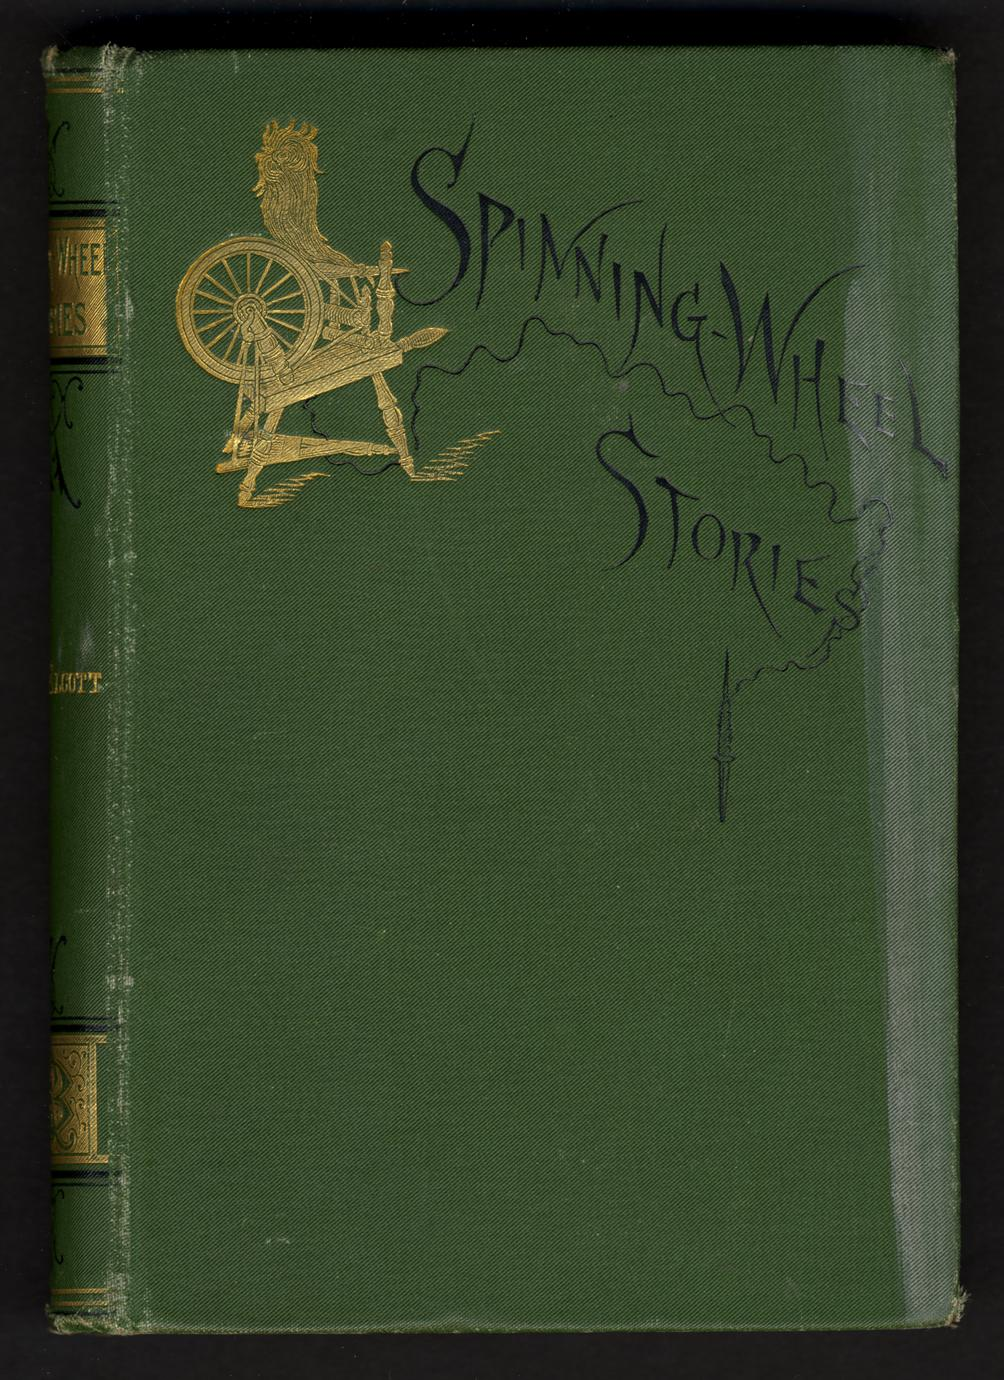 Spinning-wheel stories (1 of 3)